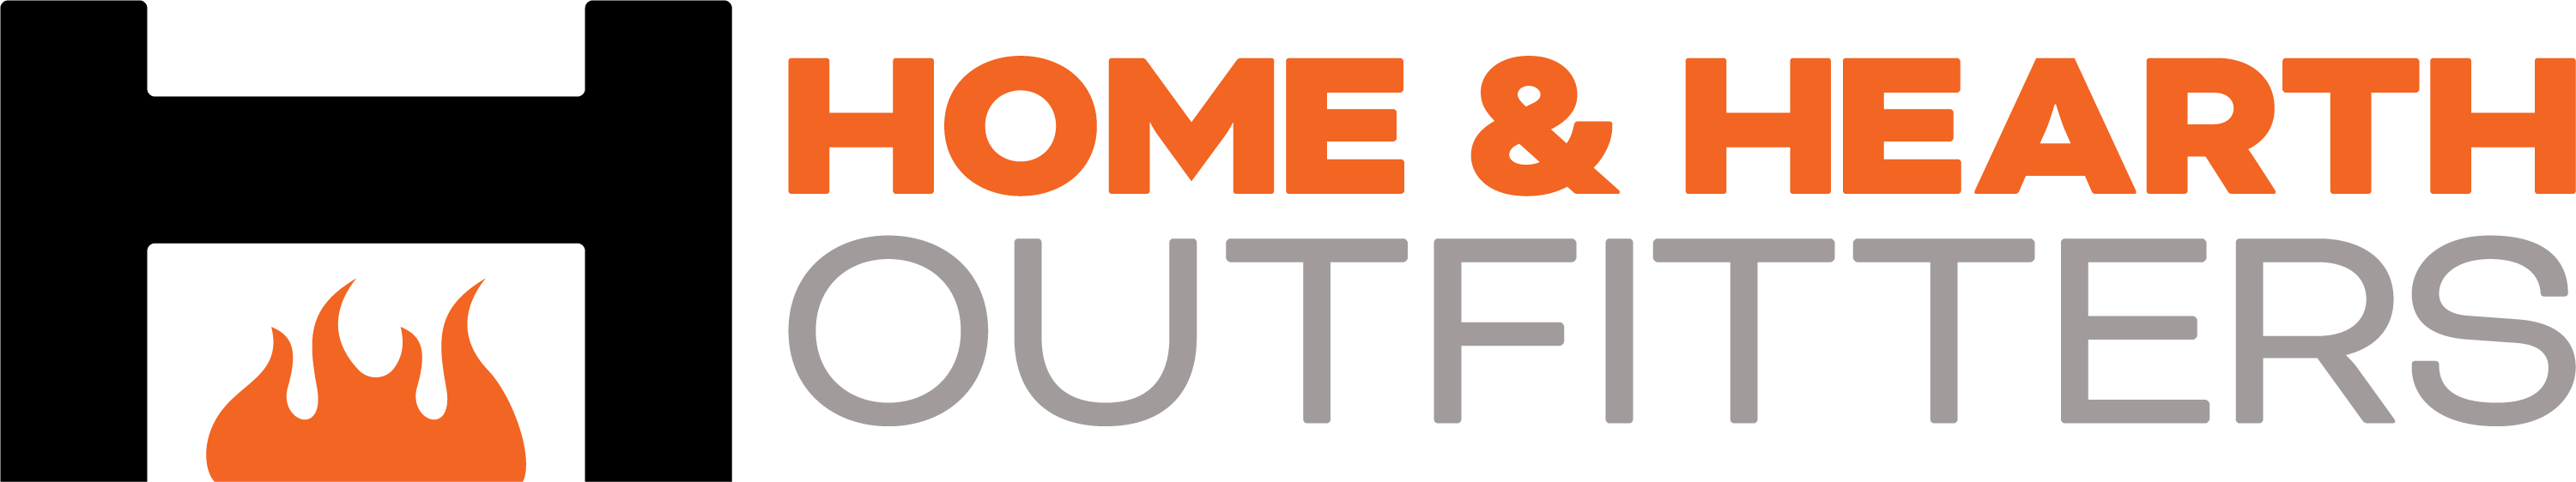 Home & Hearth Outfitters